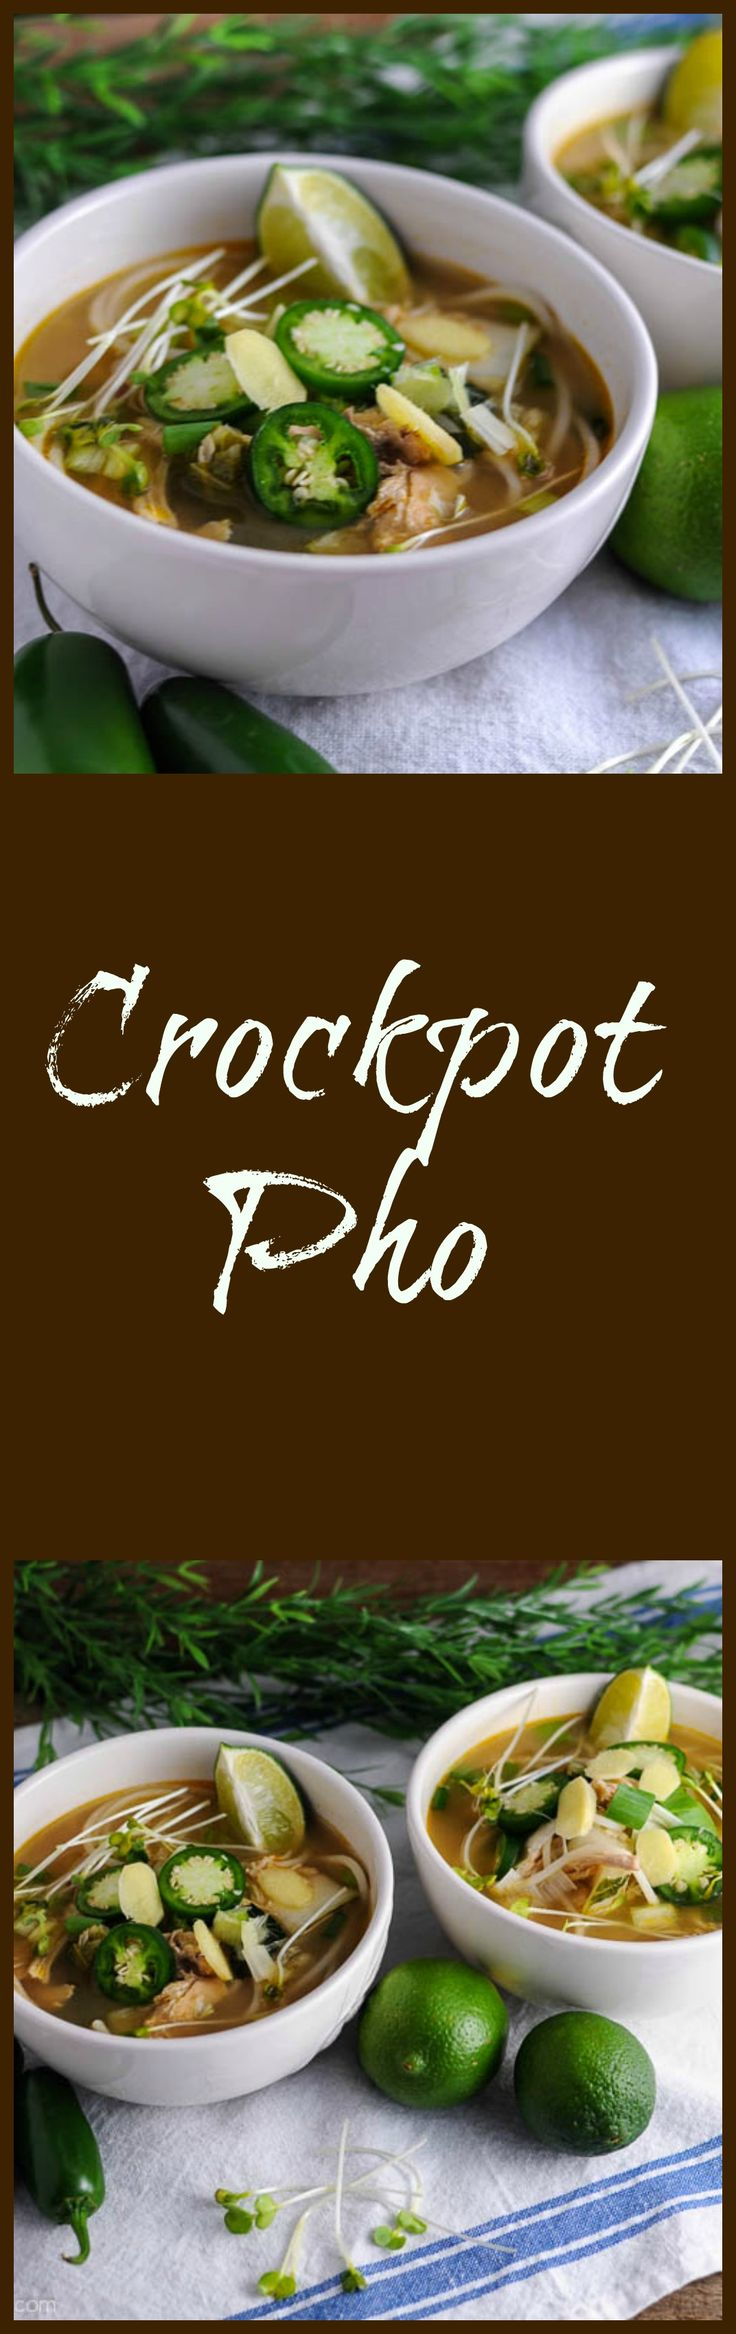 Crockpot Pho - chicken, noodles, ginger, fish sauce, lemongrass